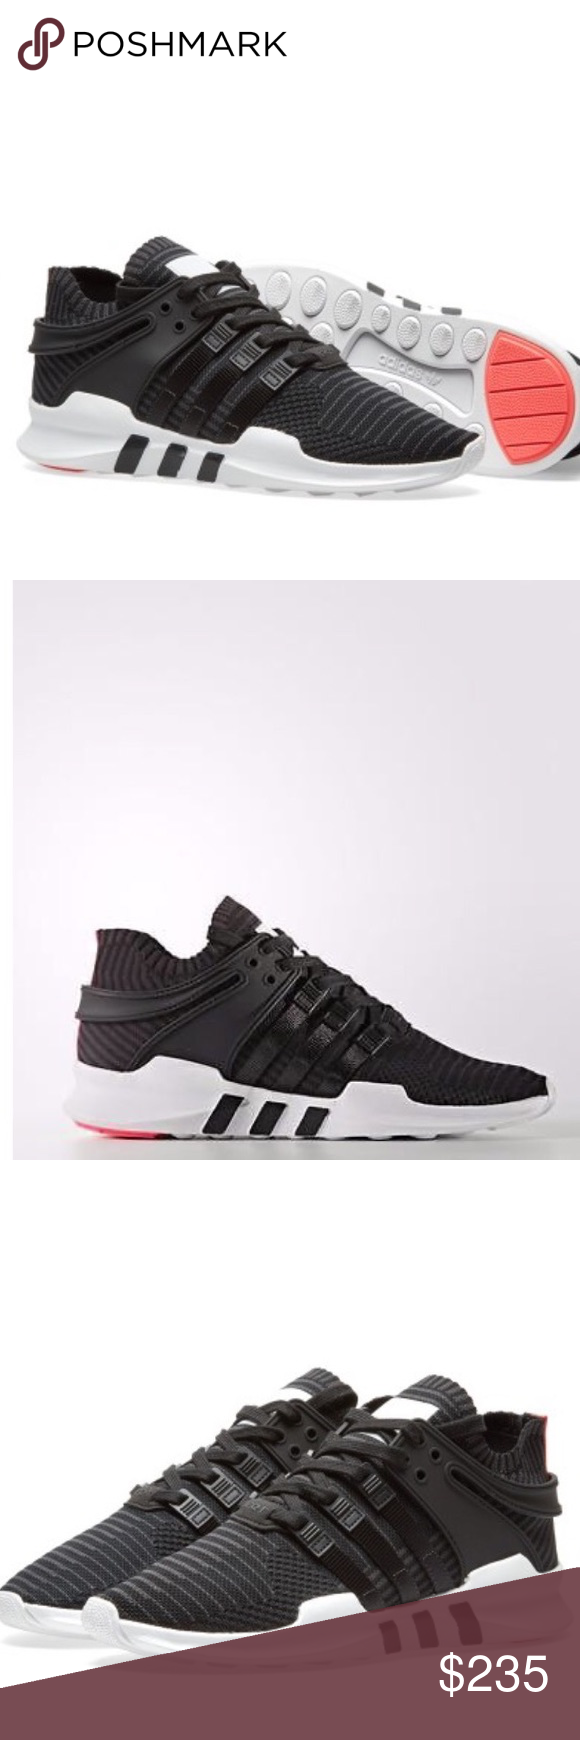 Adidas EQT Support ADV PK Turbo Red BB1260 Limited release Adidas EQT  Support ADV PK Turbo